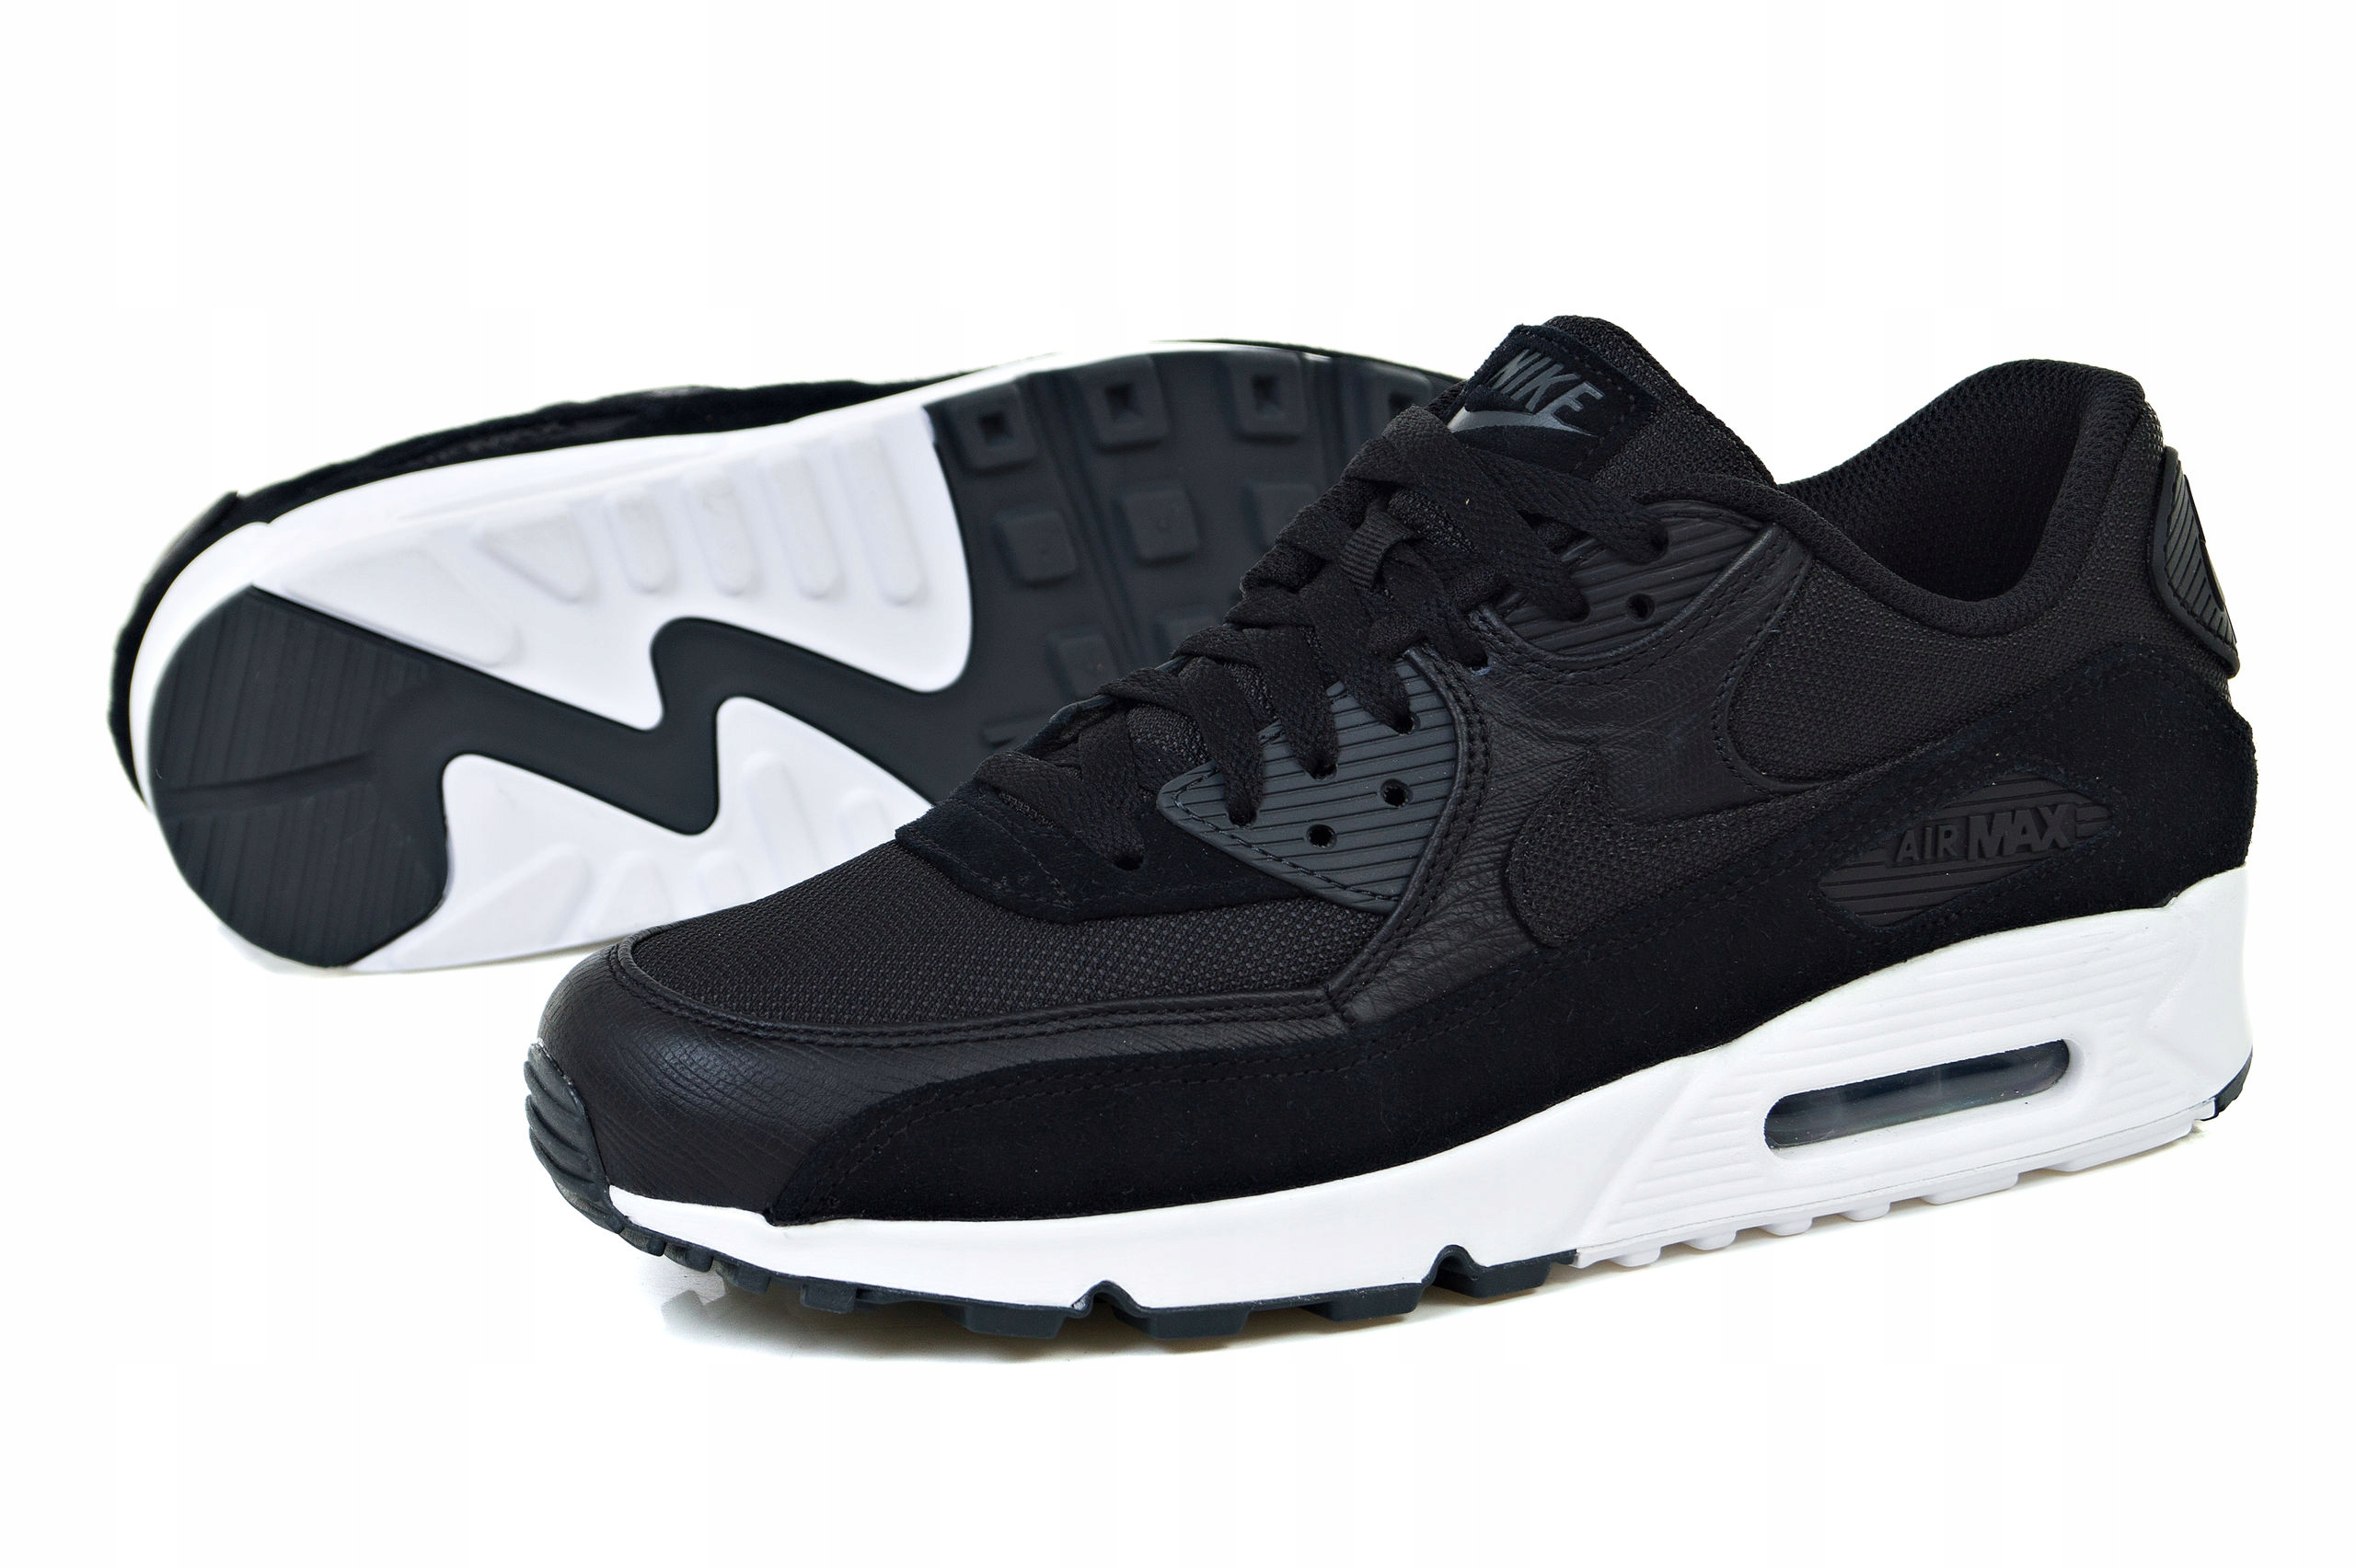 Buty Nike Air Max 90 Leather carbon Green R.44 Ceny i